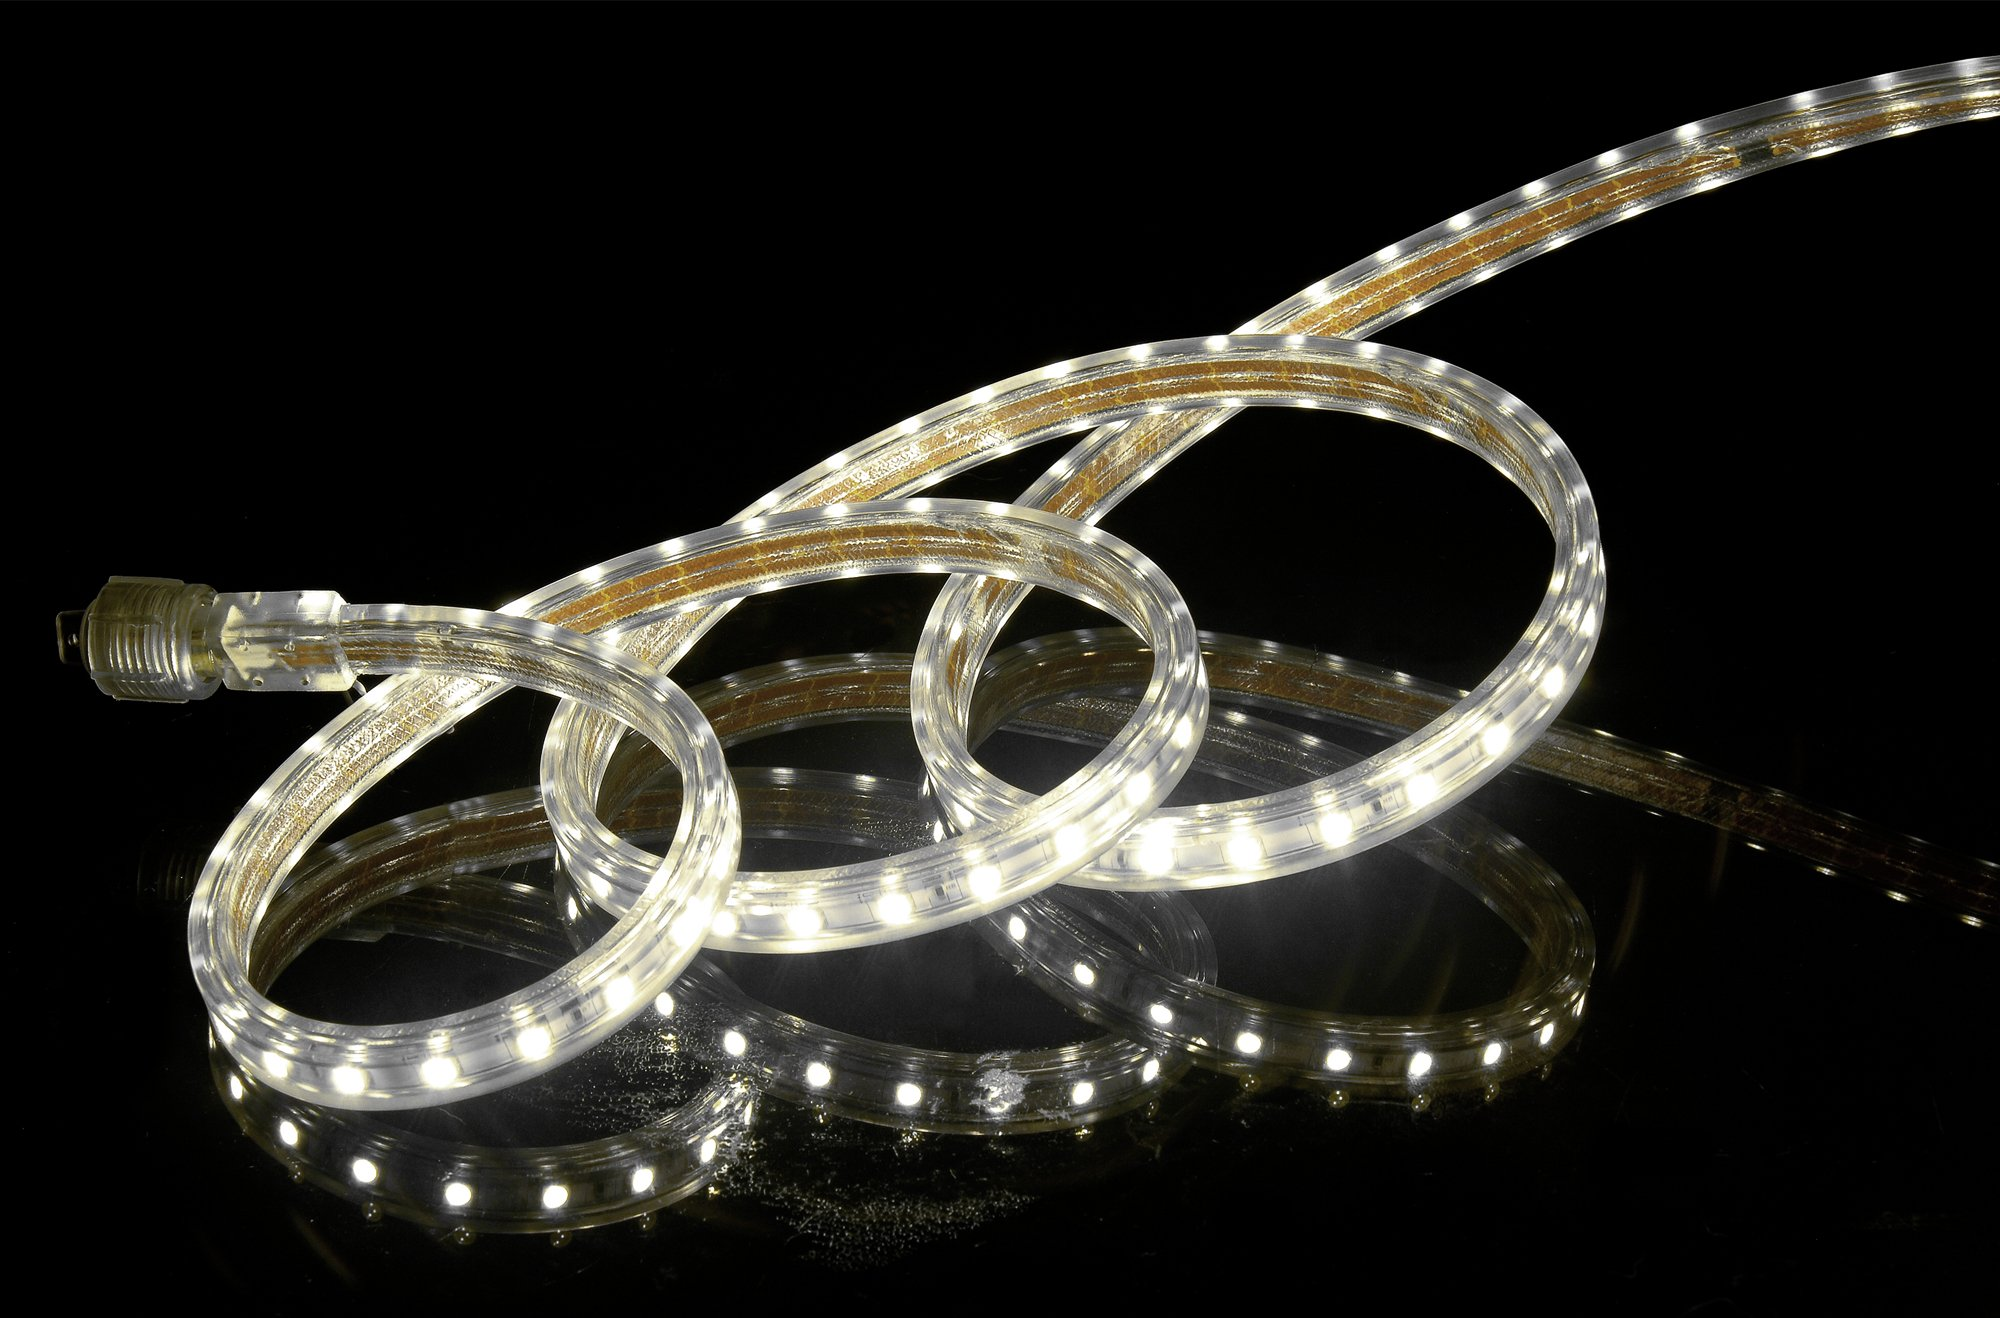 CBconcept UL Listed, 16.4 Feet, Super Bright 4500 Lumen, 4000K Soft White, Dimmable, 110-120V AC Flexible Flat LED Strip Rope Light, 300 Units 5050 SMD LEDs, Indoor/Outdoor Use, [Ready to use]